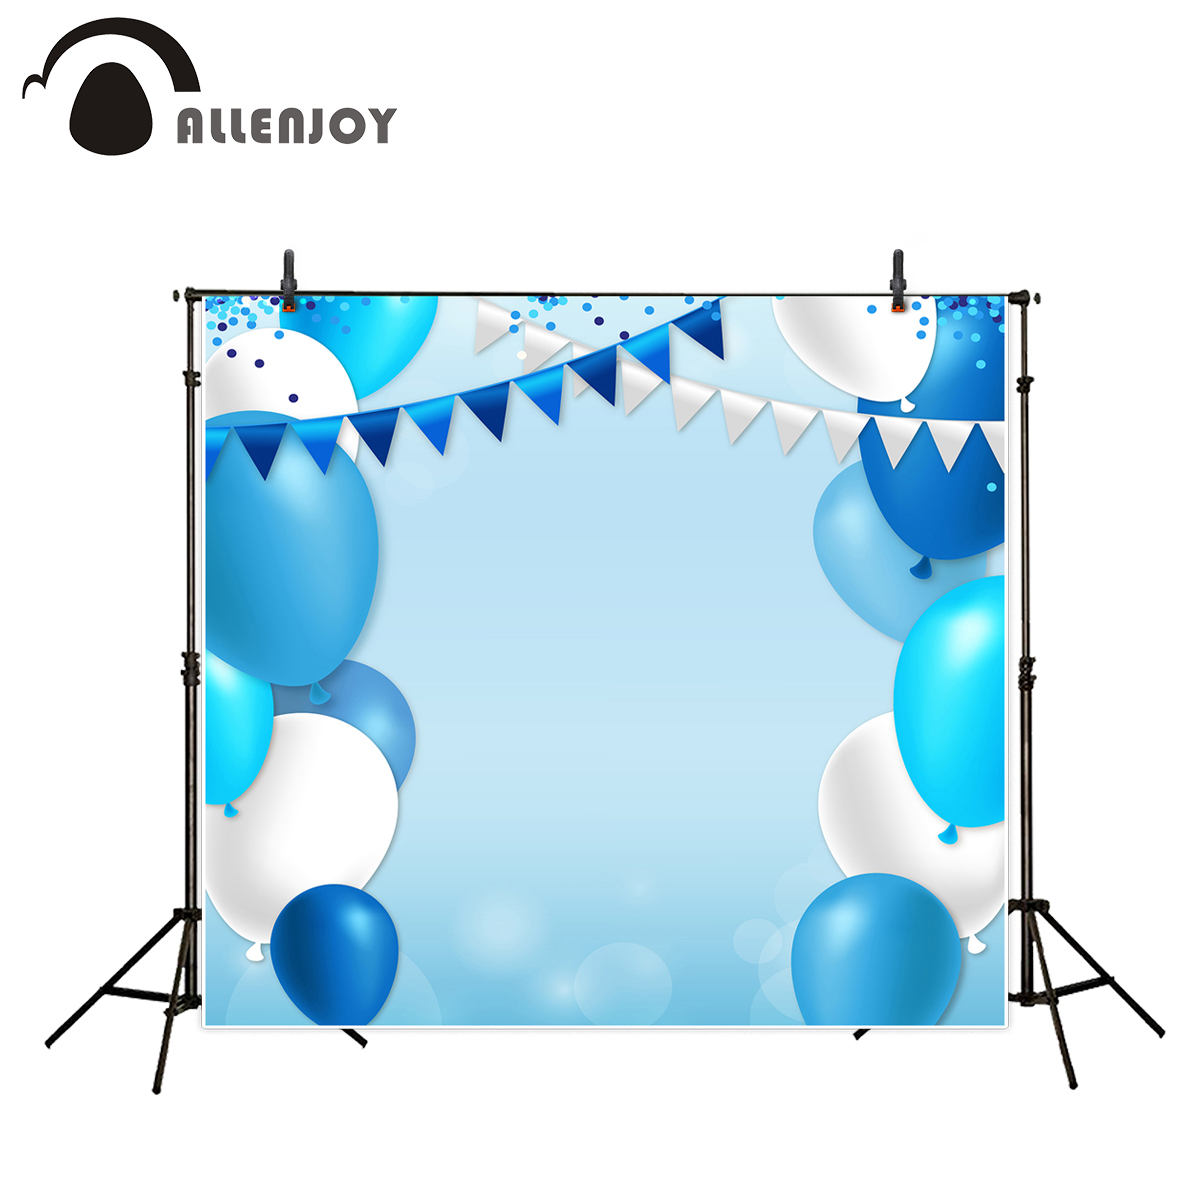 Allenjoy photography backdrop blue dots flags balloon party birthday photobooth photo studio newborn original design allenjoy background for photo studio full moon spider black cat pumpkin halloween backdrop newborn original design fantasy props